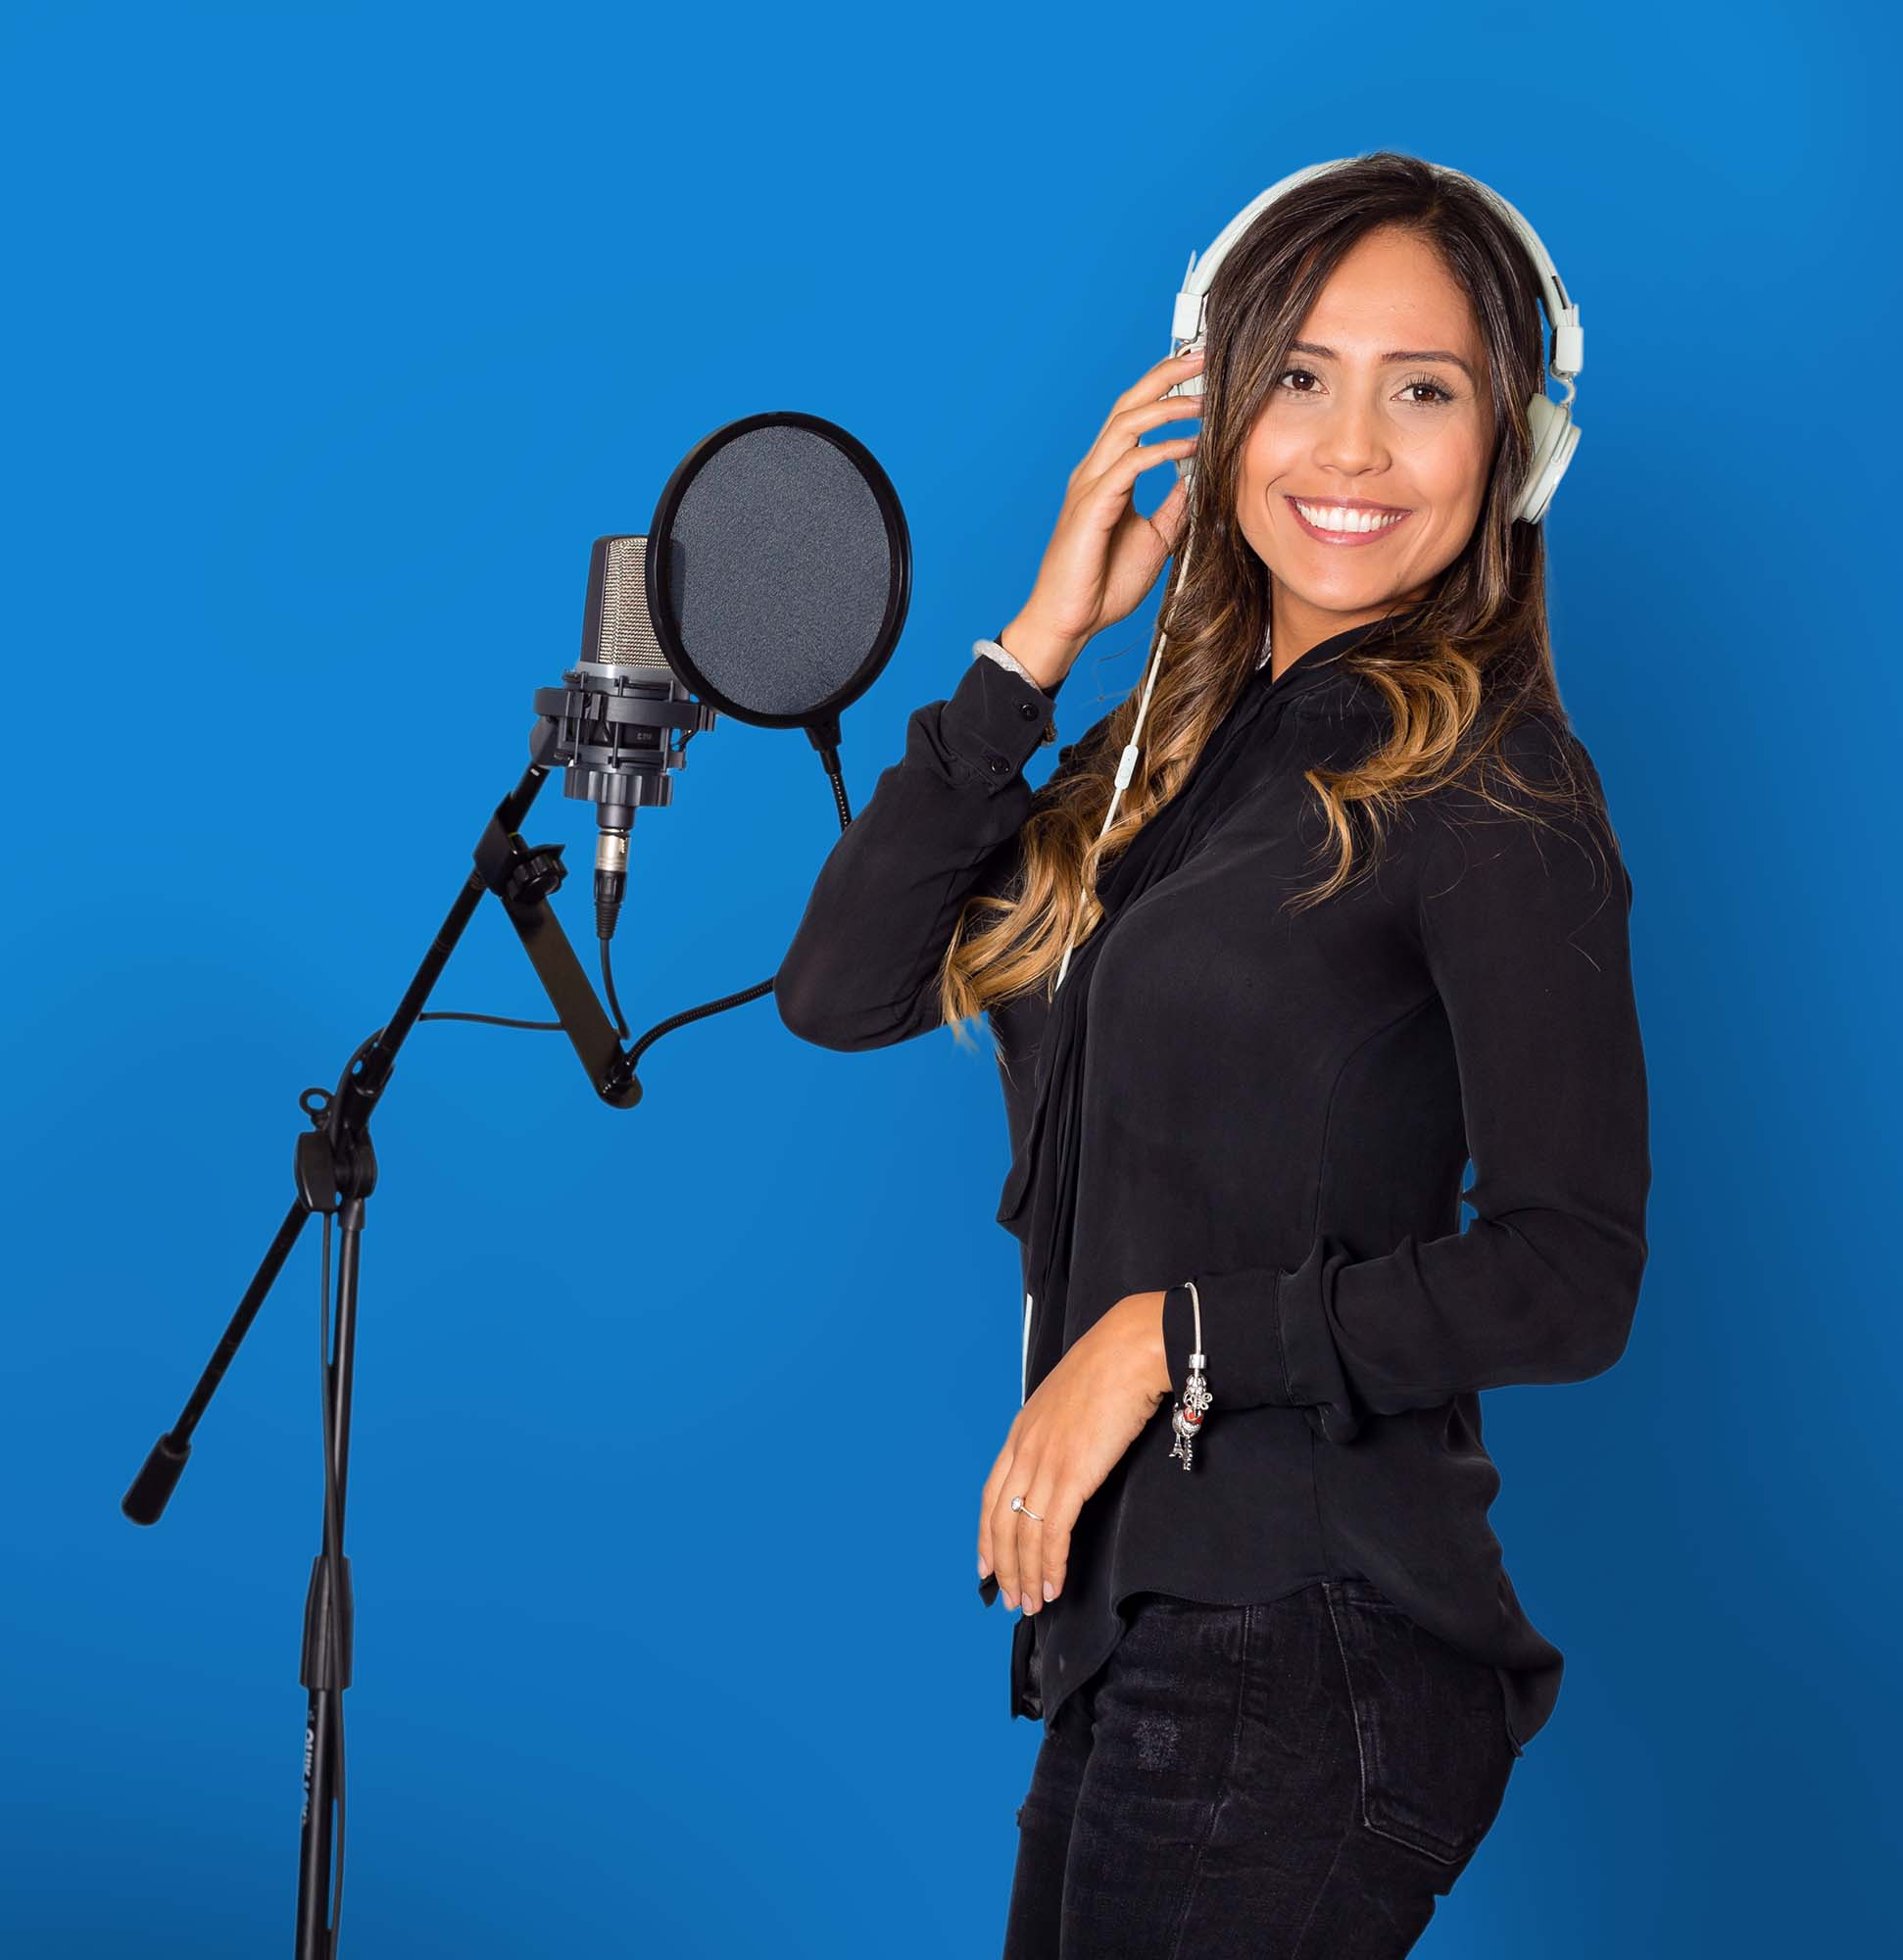 A woman standing in front of a microphone against a blue background, while putting a hand to her headphones.